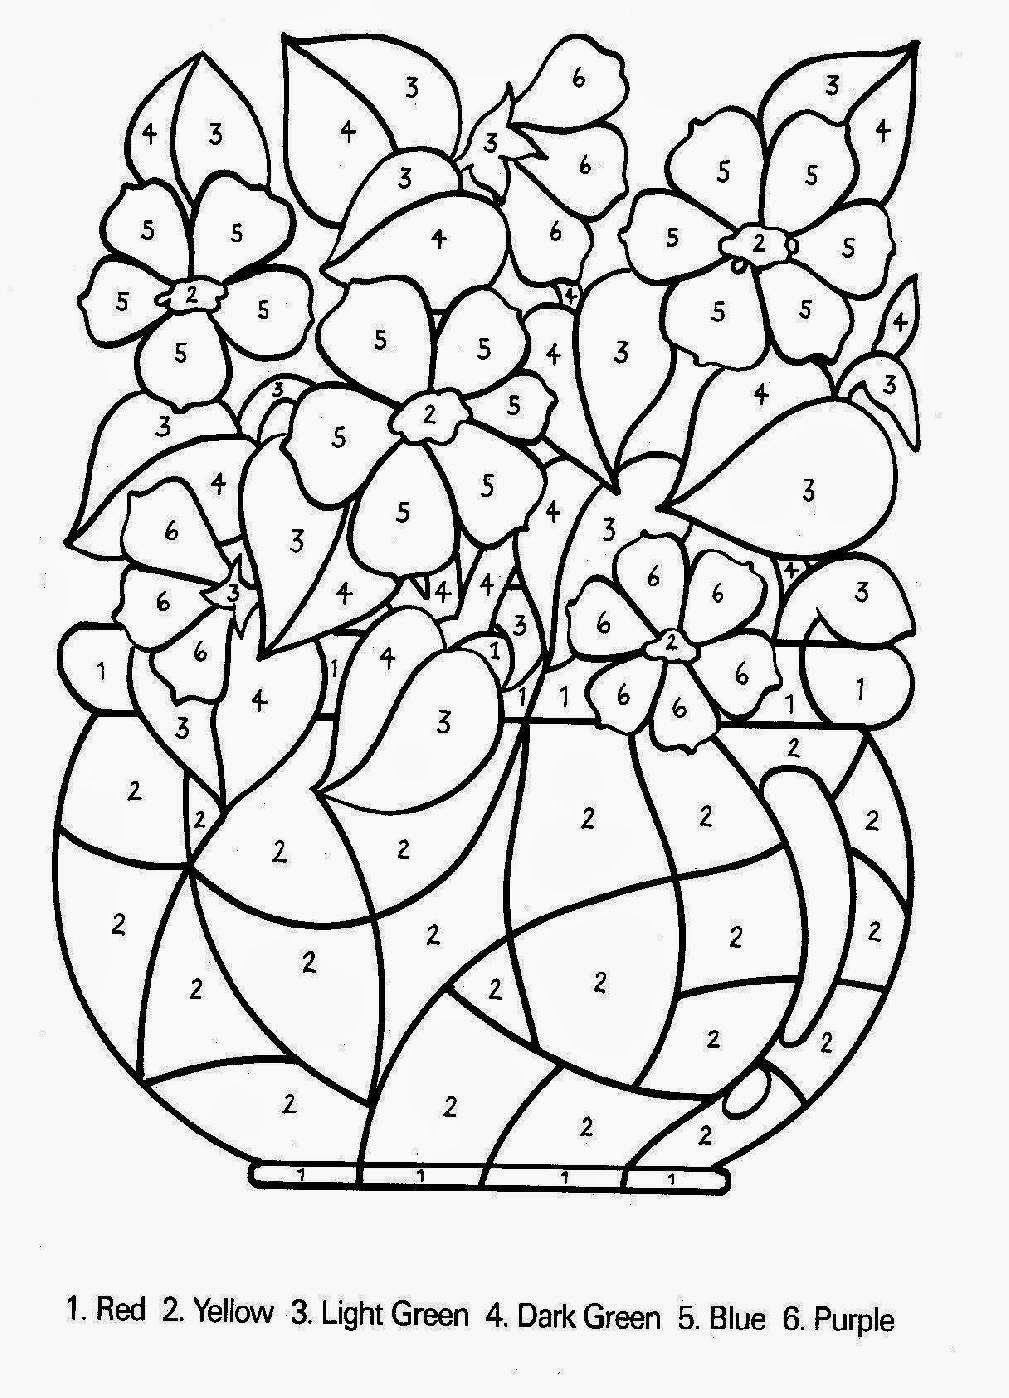 Number Coloring Sheets Free Coloring Sheet | coloring_pages | Pinterest